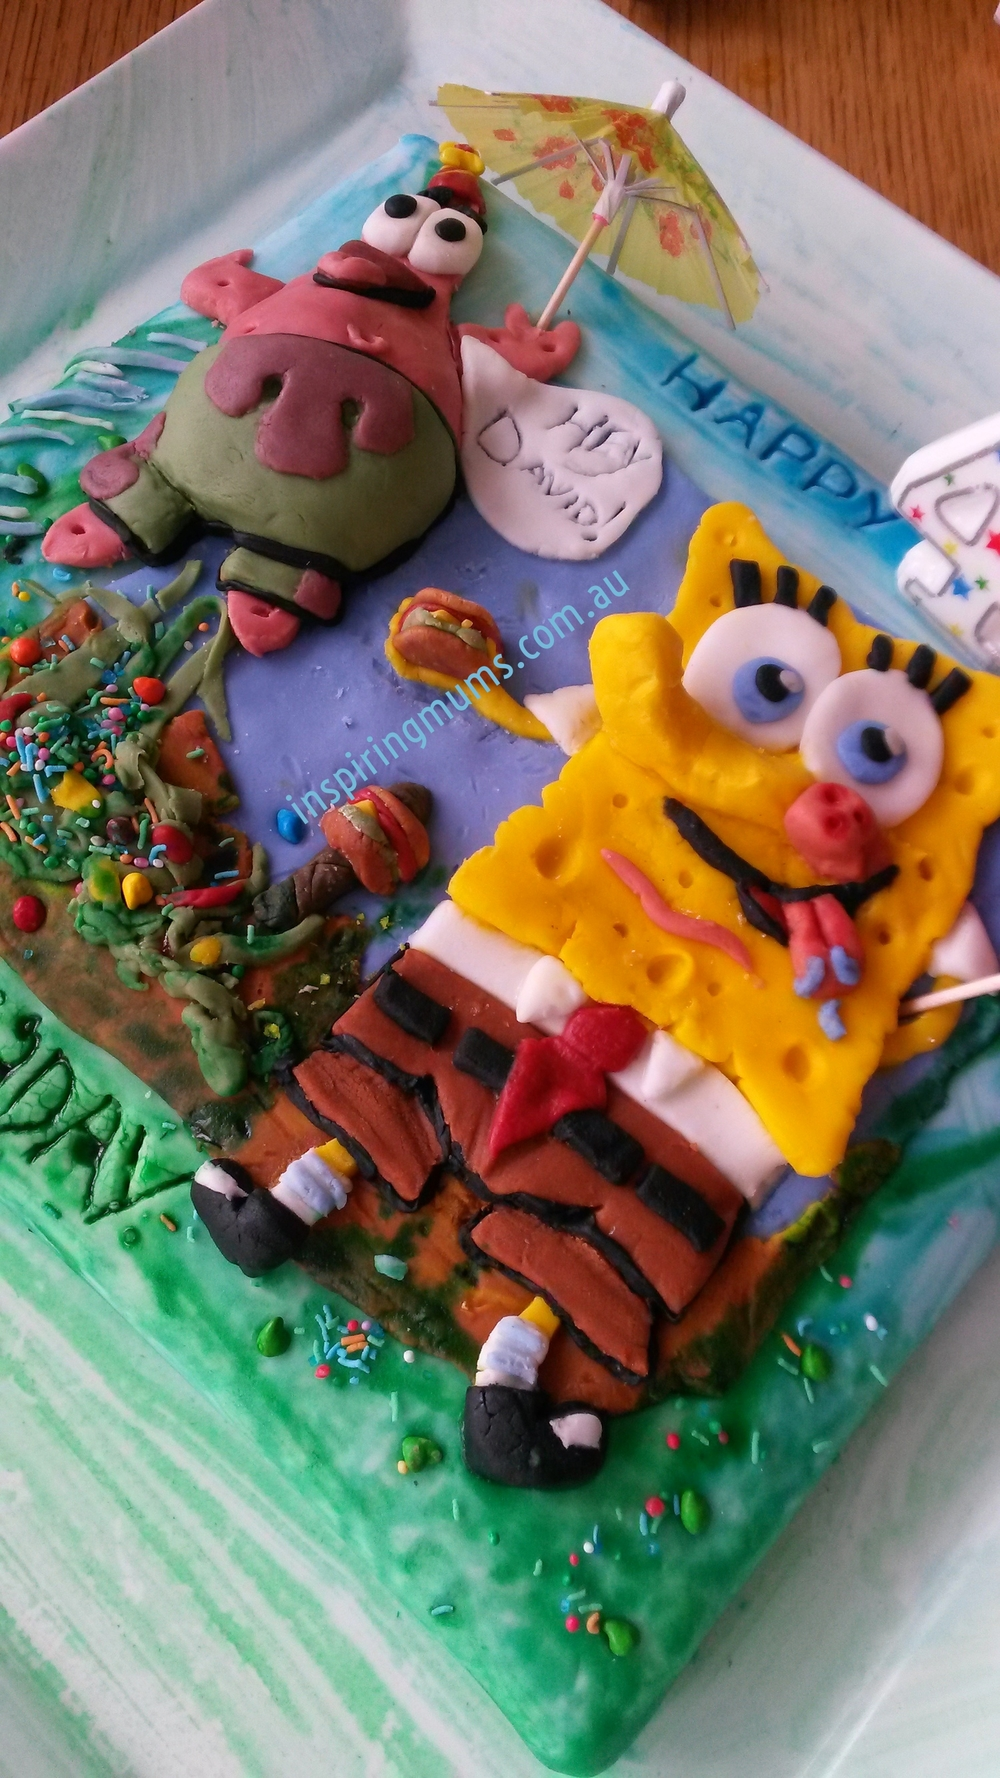 "Spongebob SquarePants Birthday Cake for a 4 Year old boy - design and made by yours truly! Inspiring Mums® ""Nailed it!"""